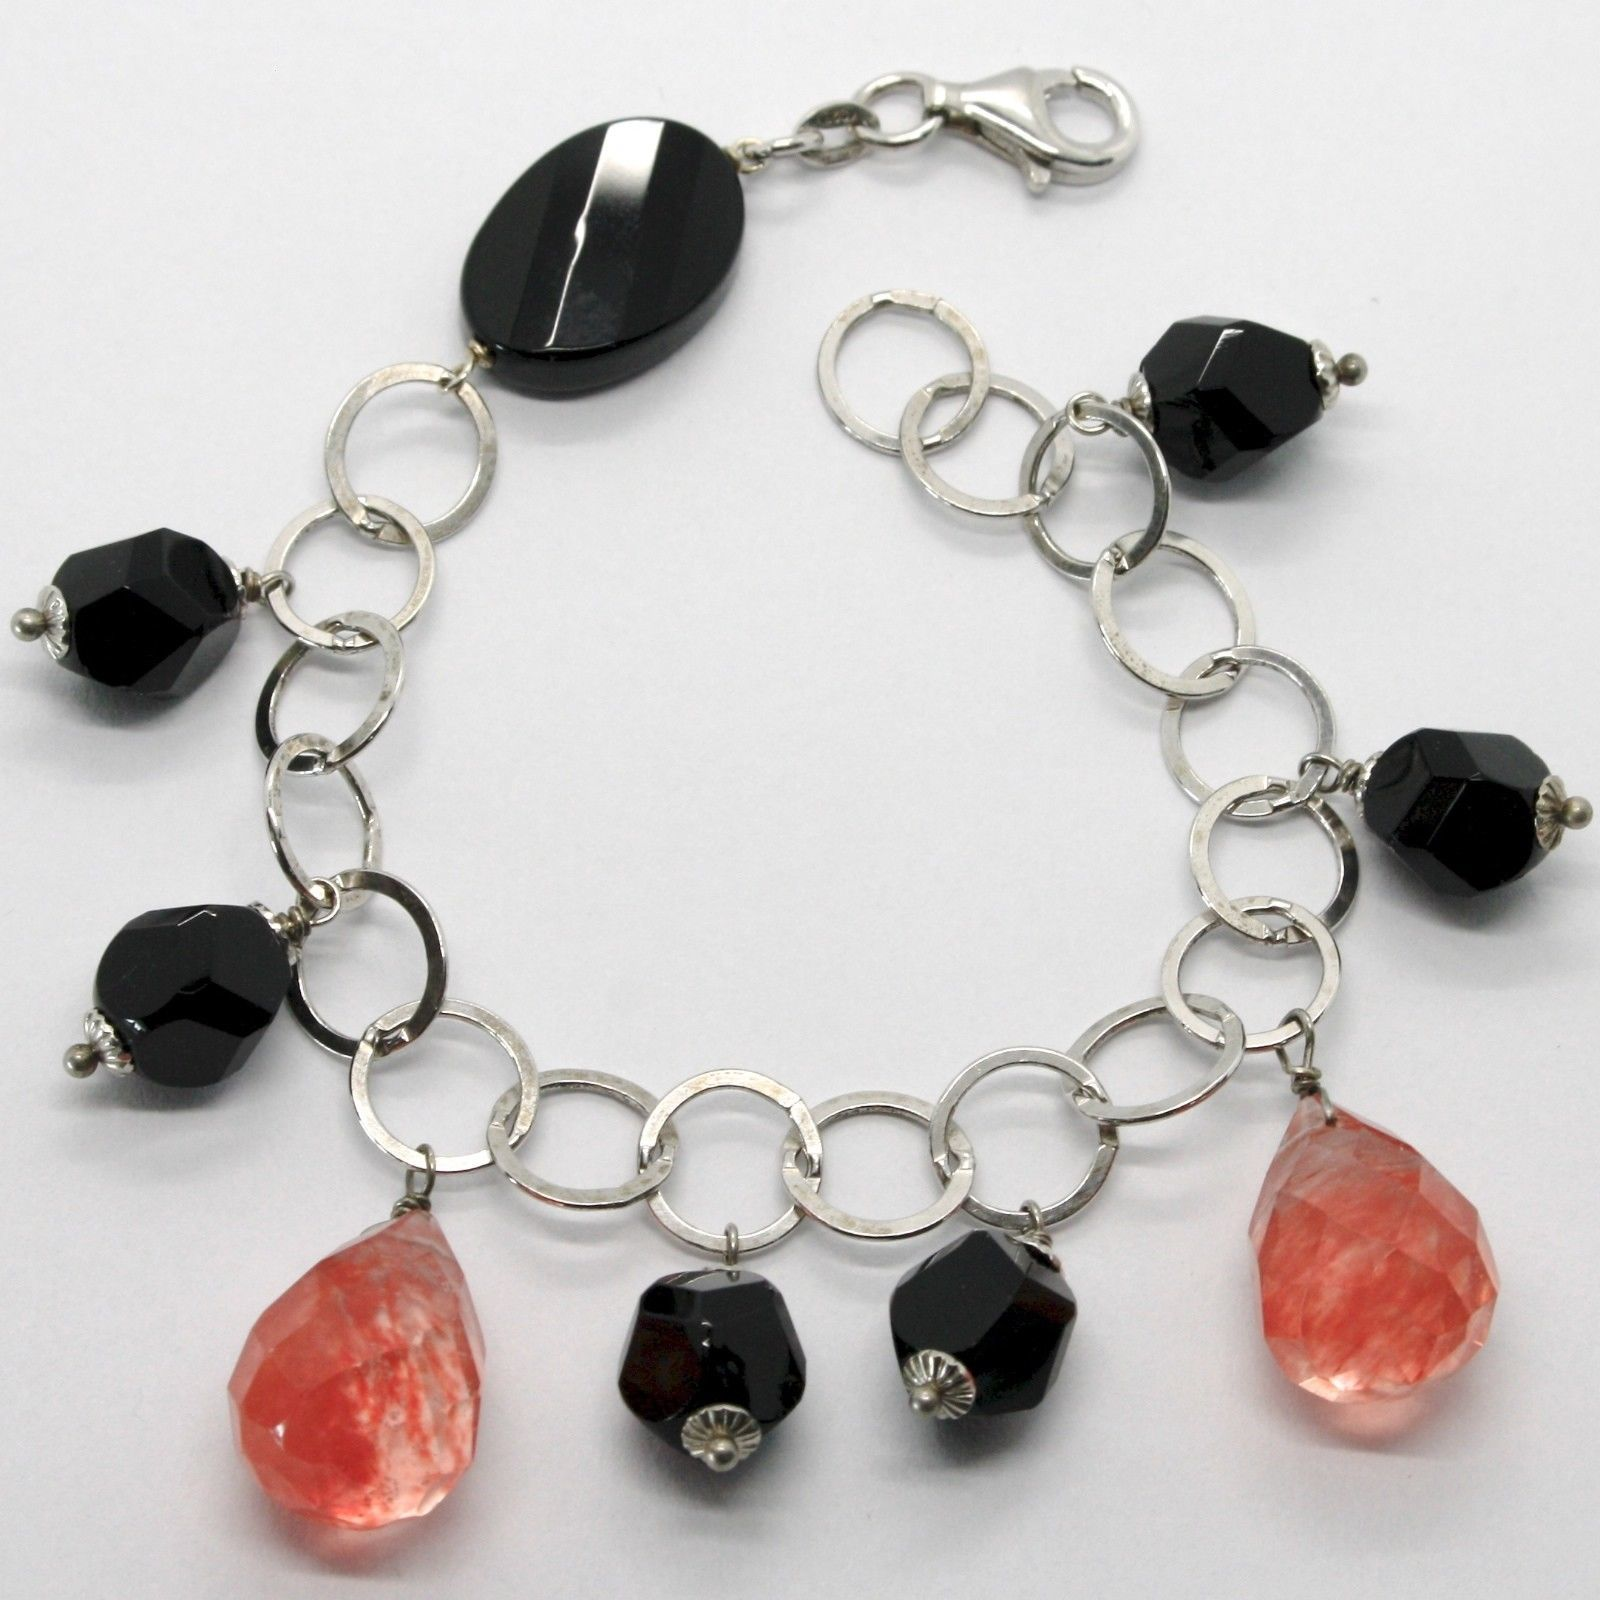 925 STERLING SILVER BRACELET WITH BLACK ONYX NUGGETS AND FACETED RED QUARTZ DROP